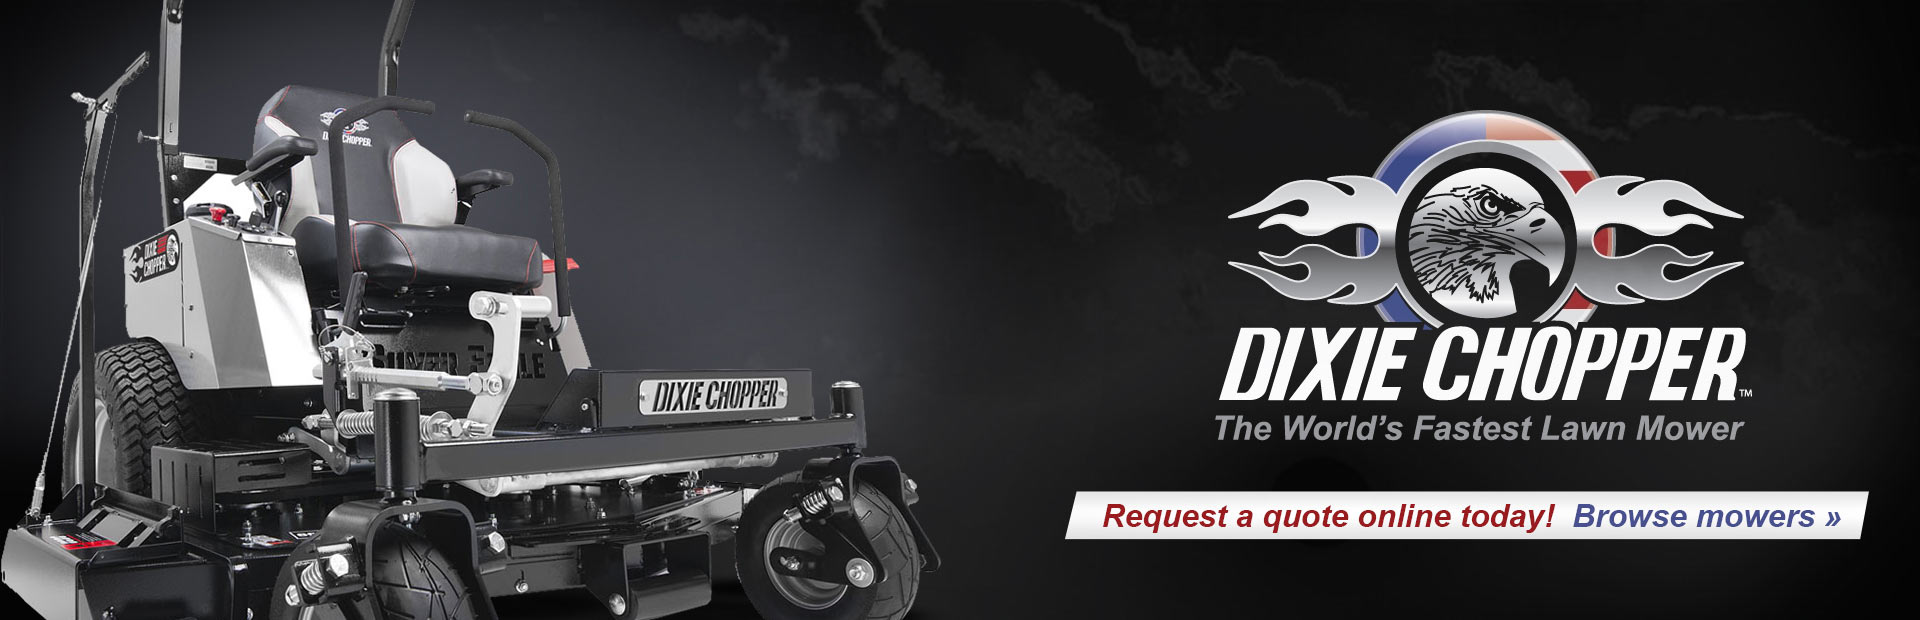 Click here to view Dixie Chopper lawn mowers!